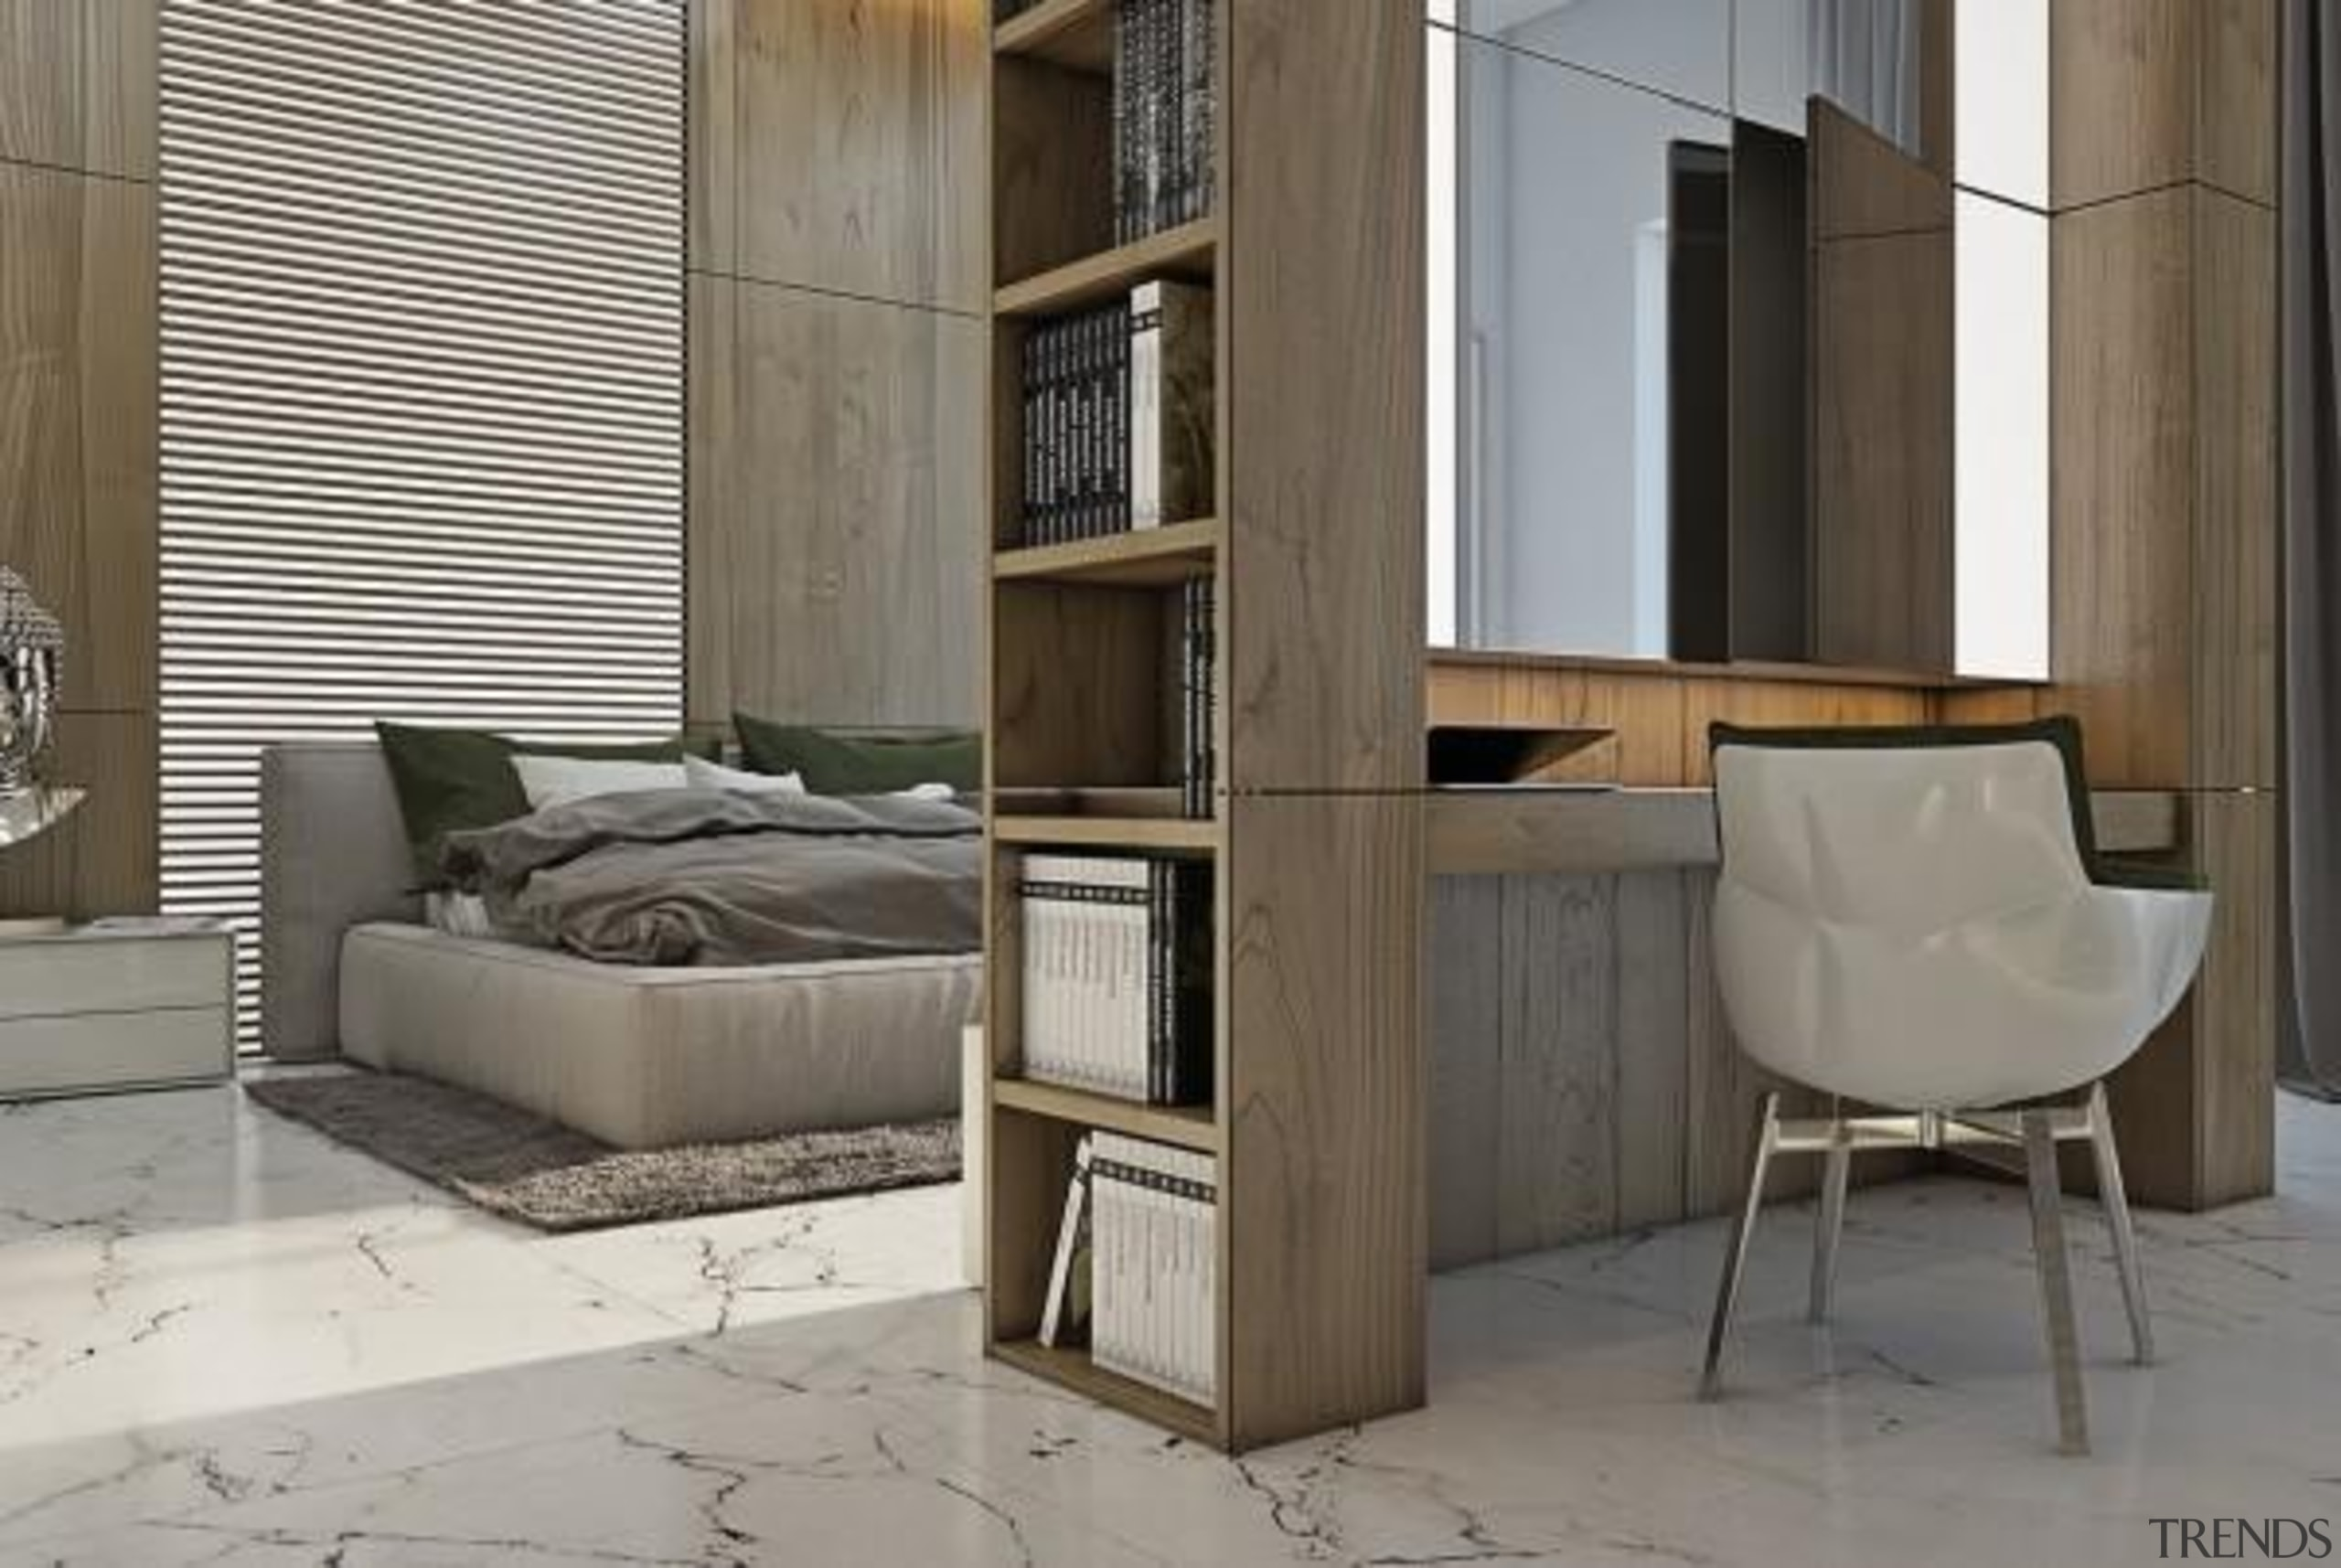 bedroom workplace - Masculine Apartments - floor   floor, furniture, interior design, product design, shelving, table, gray